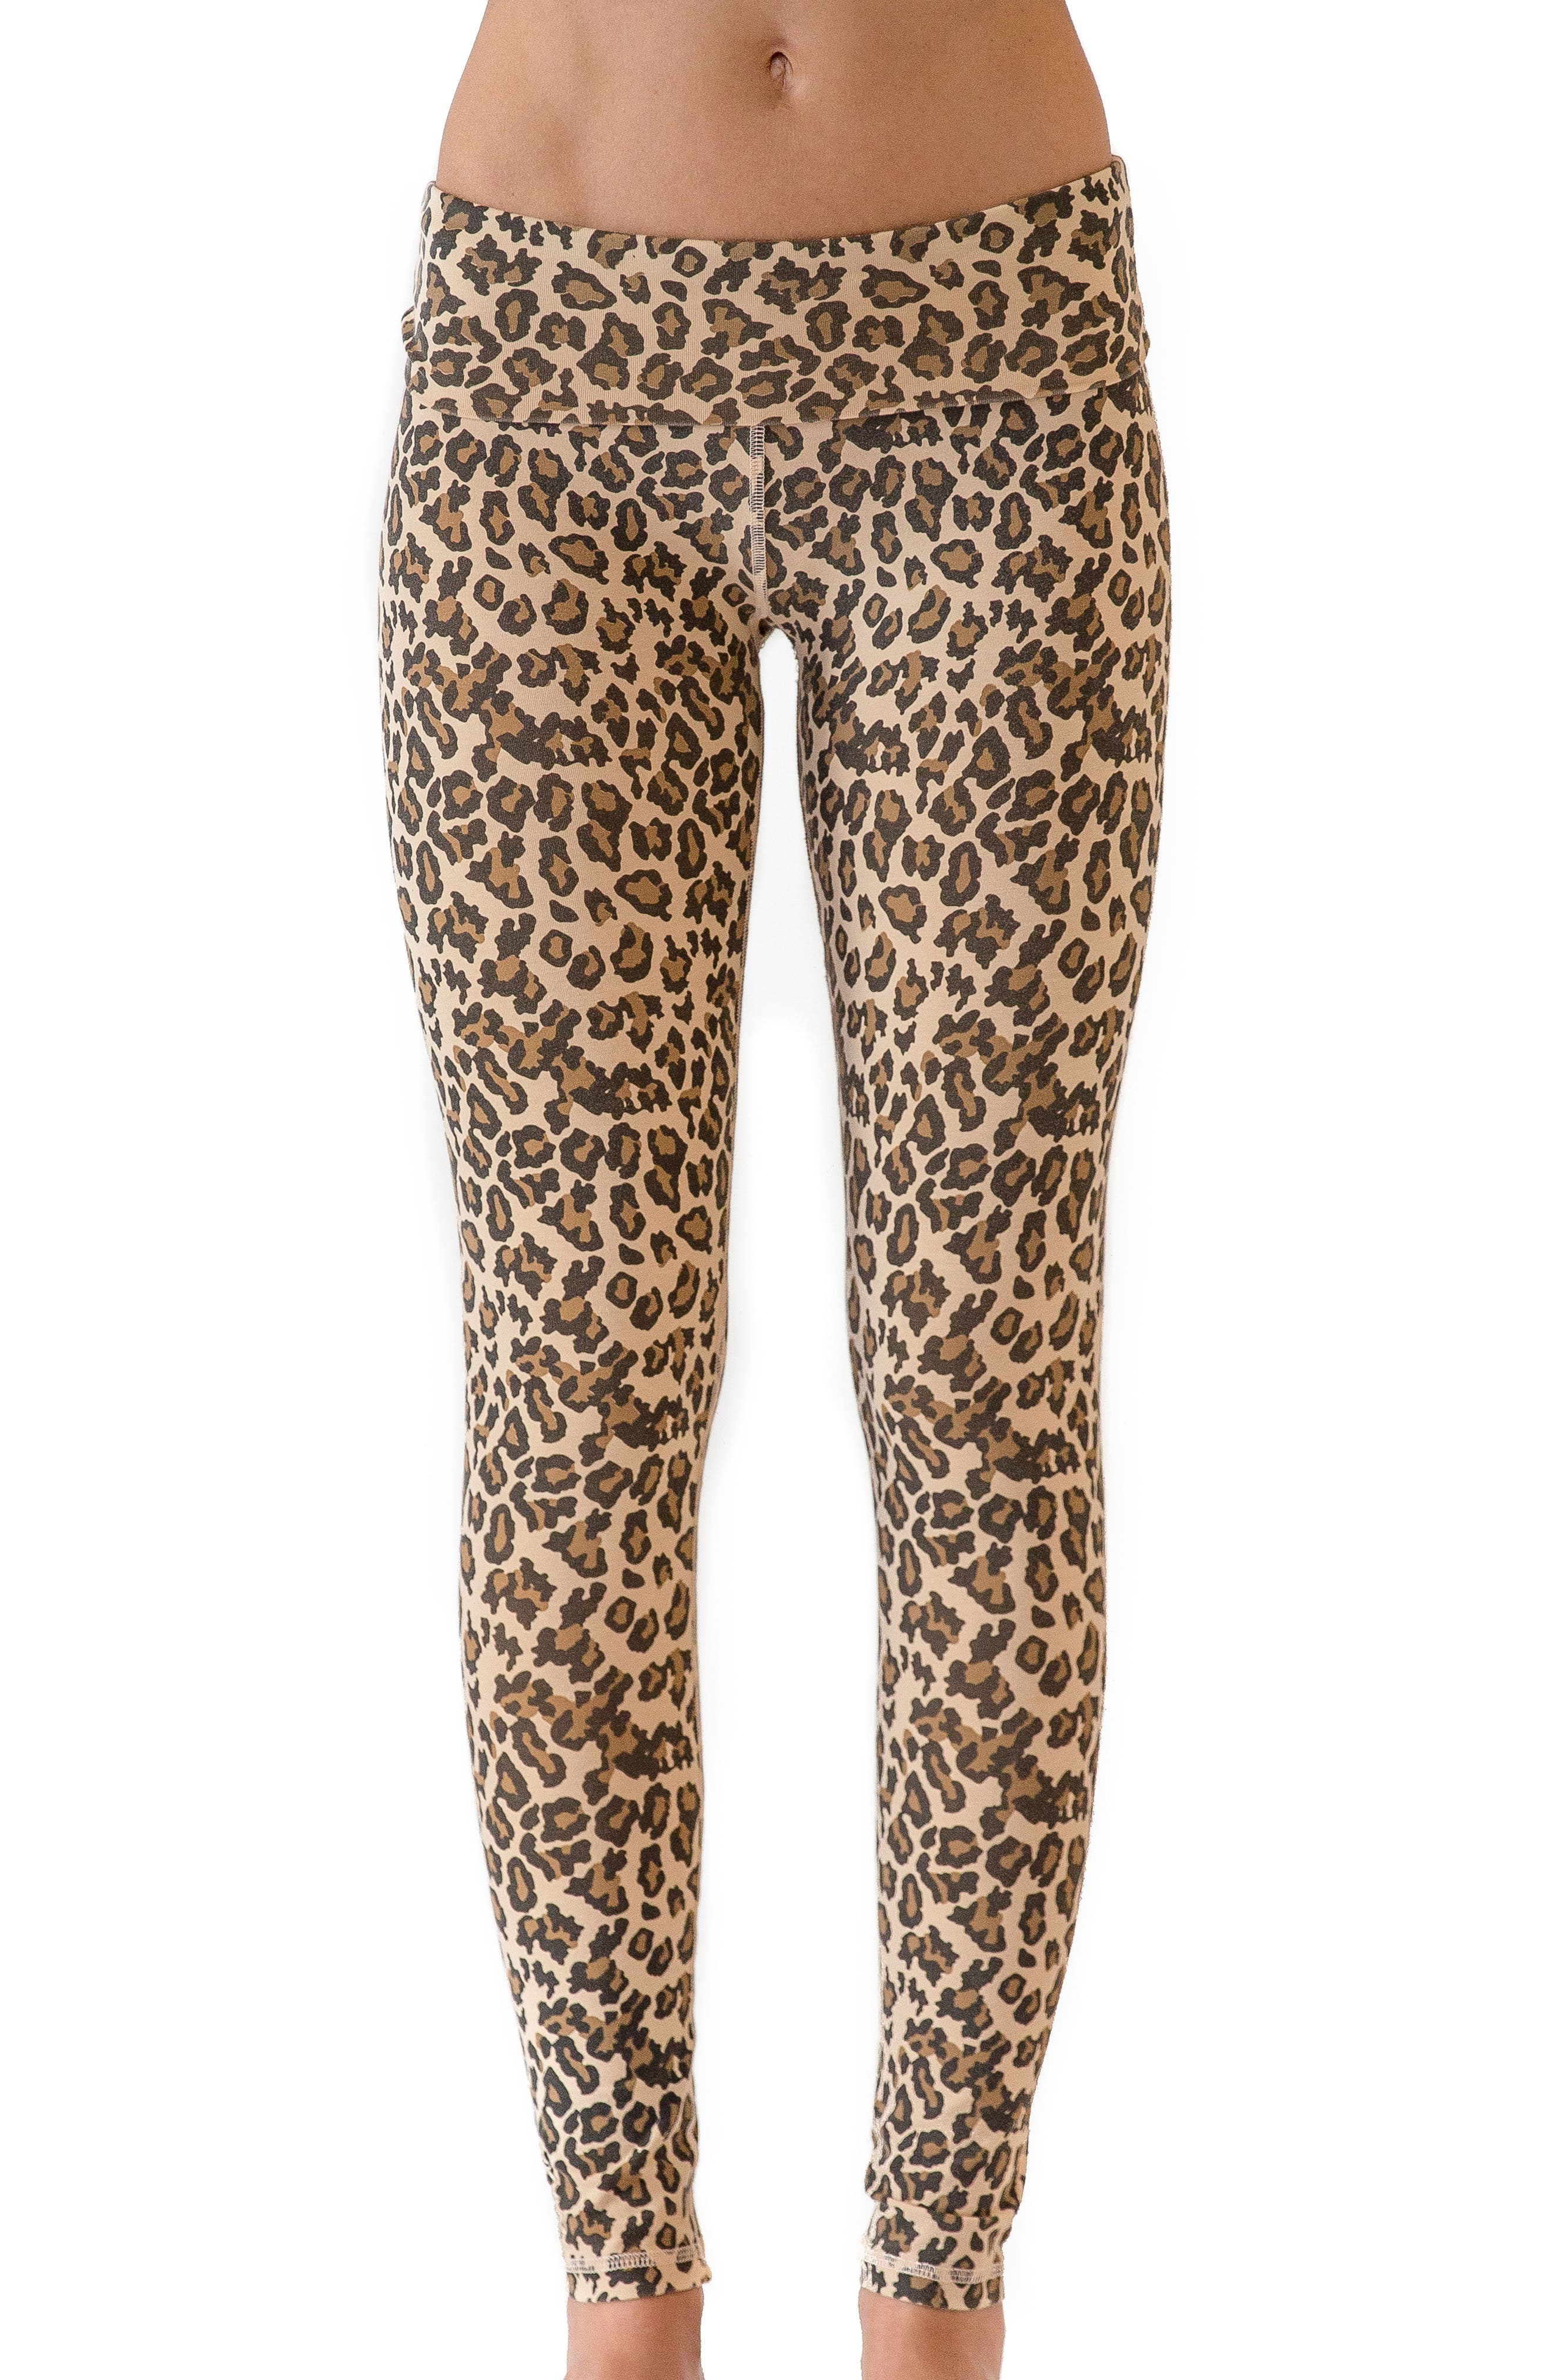 Leopard Print Leggings,                             Main thumbnail 1, color,                             Faded Camel